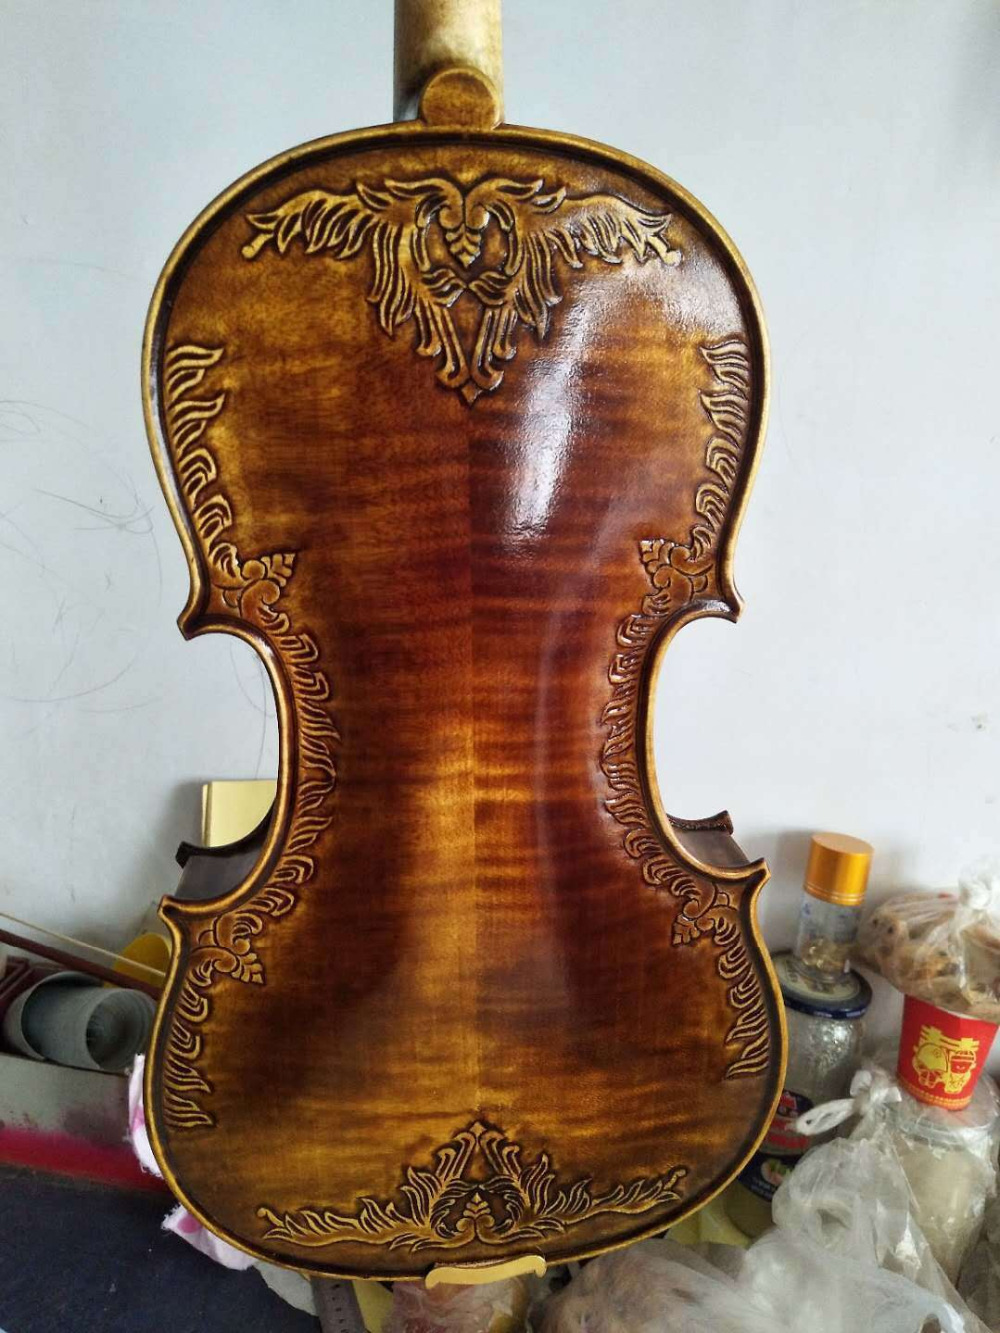 4/4 Violin Excellent Handcarved European Flamed Maple Back Spruce Top NO4 Violin